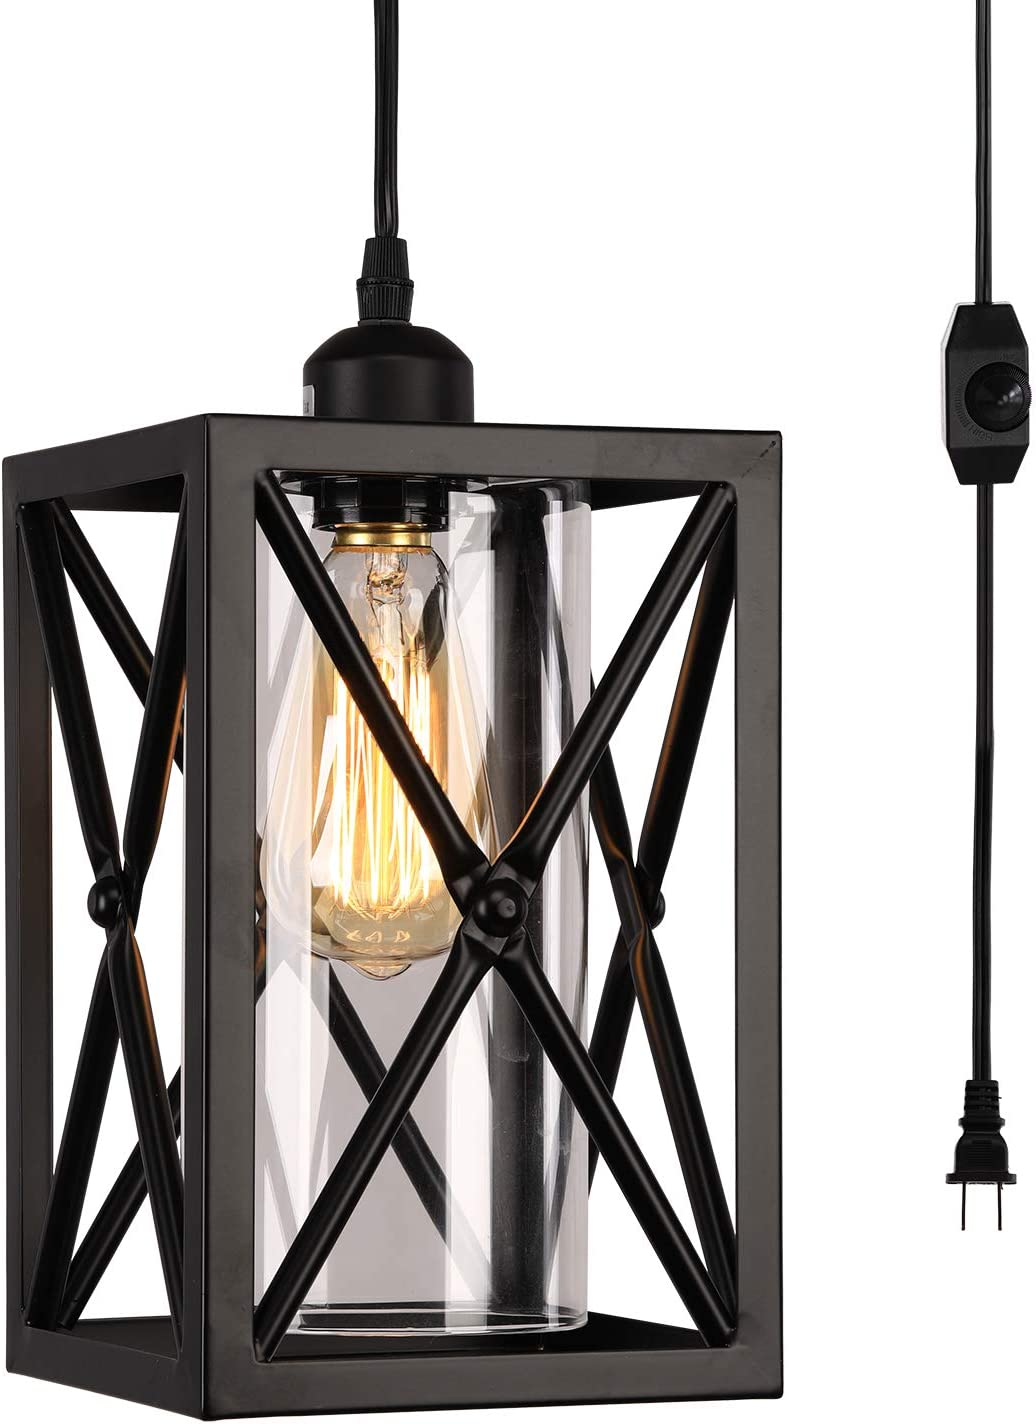 HMVPL Antique Glass Pendent Ceiling Lights with 16.4 Ft Plug in Cord and On Off Dimmer Switch, Updated Industrial Swag Hanging Lamps for Kitchen Island Dining Room or Living Room, Black Finish